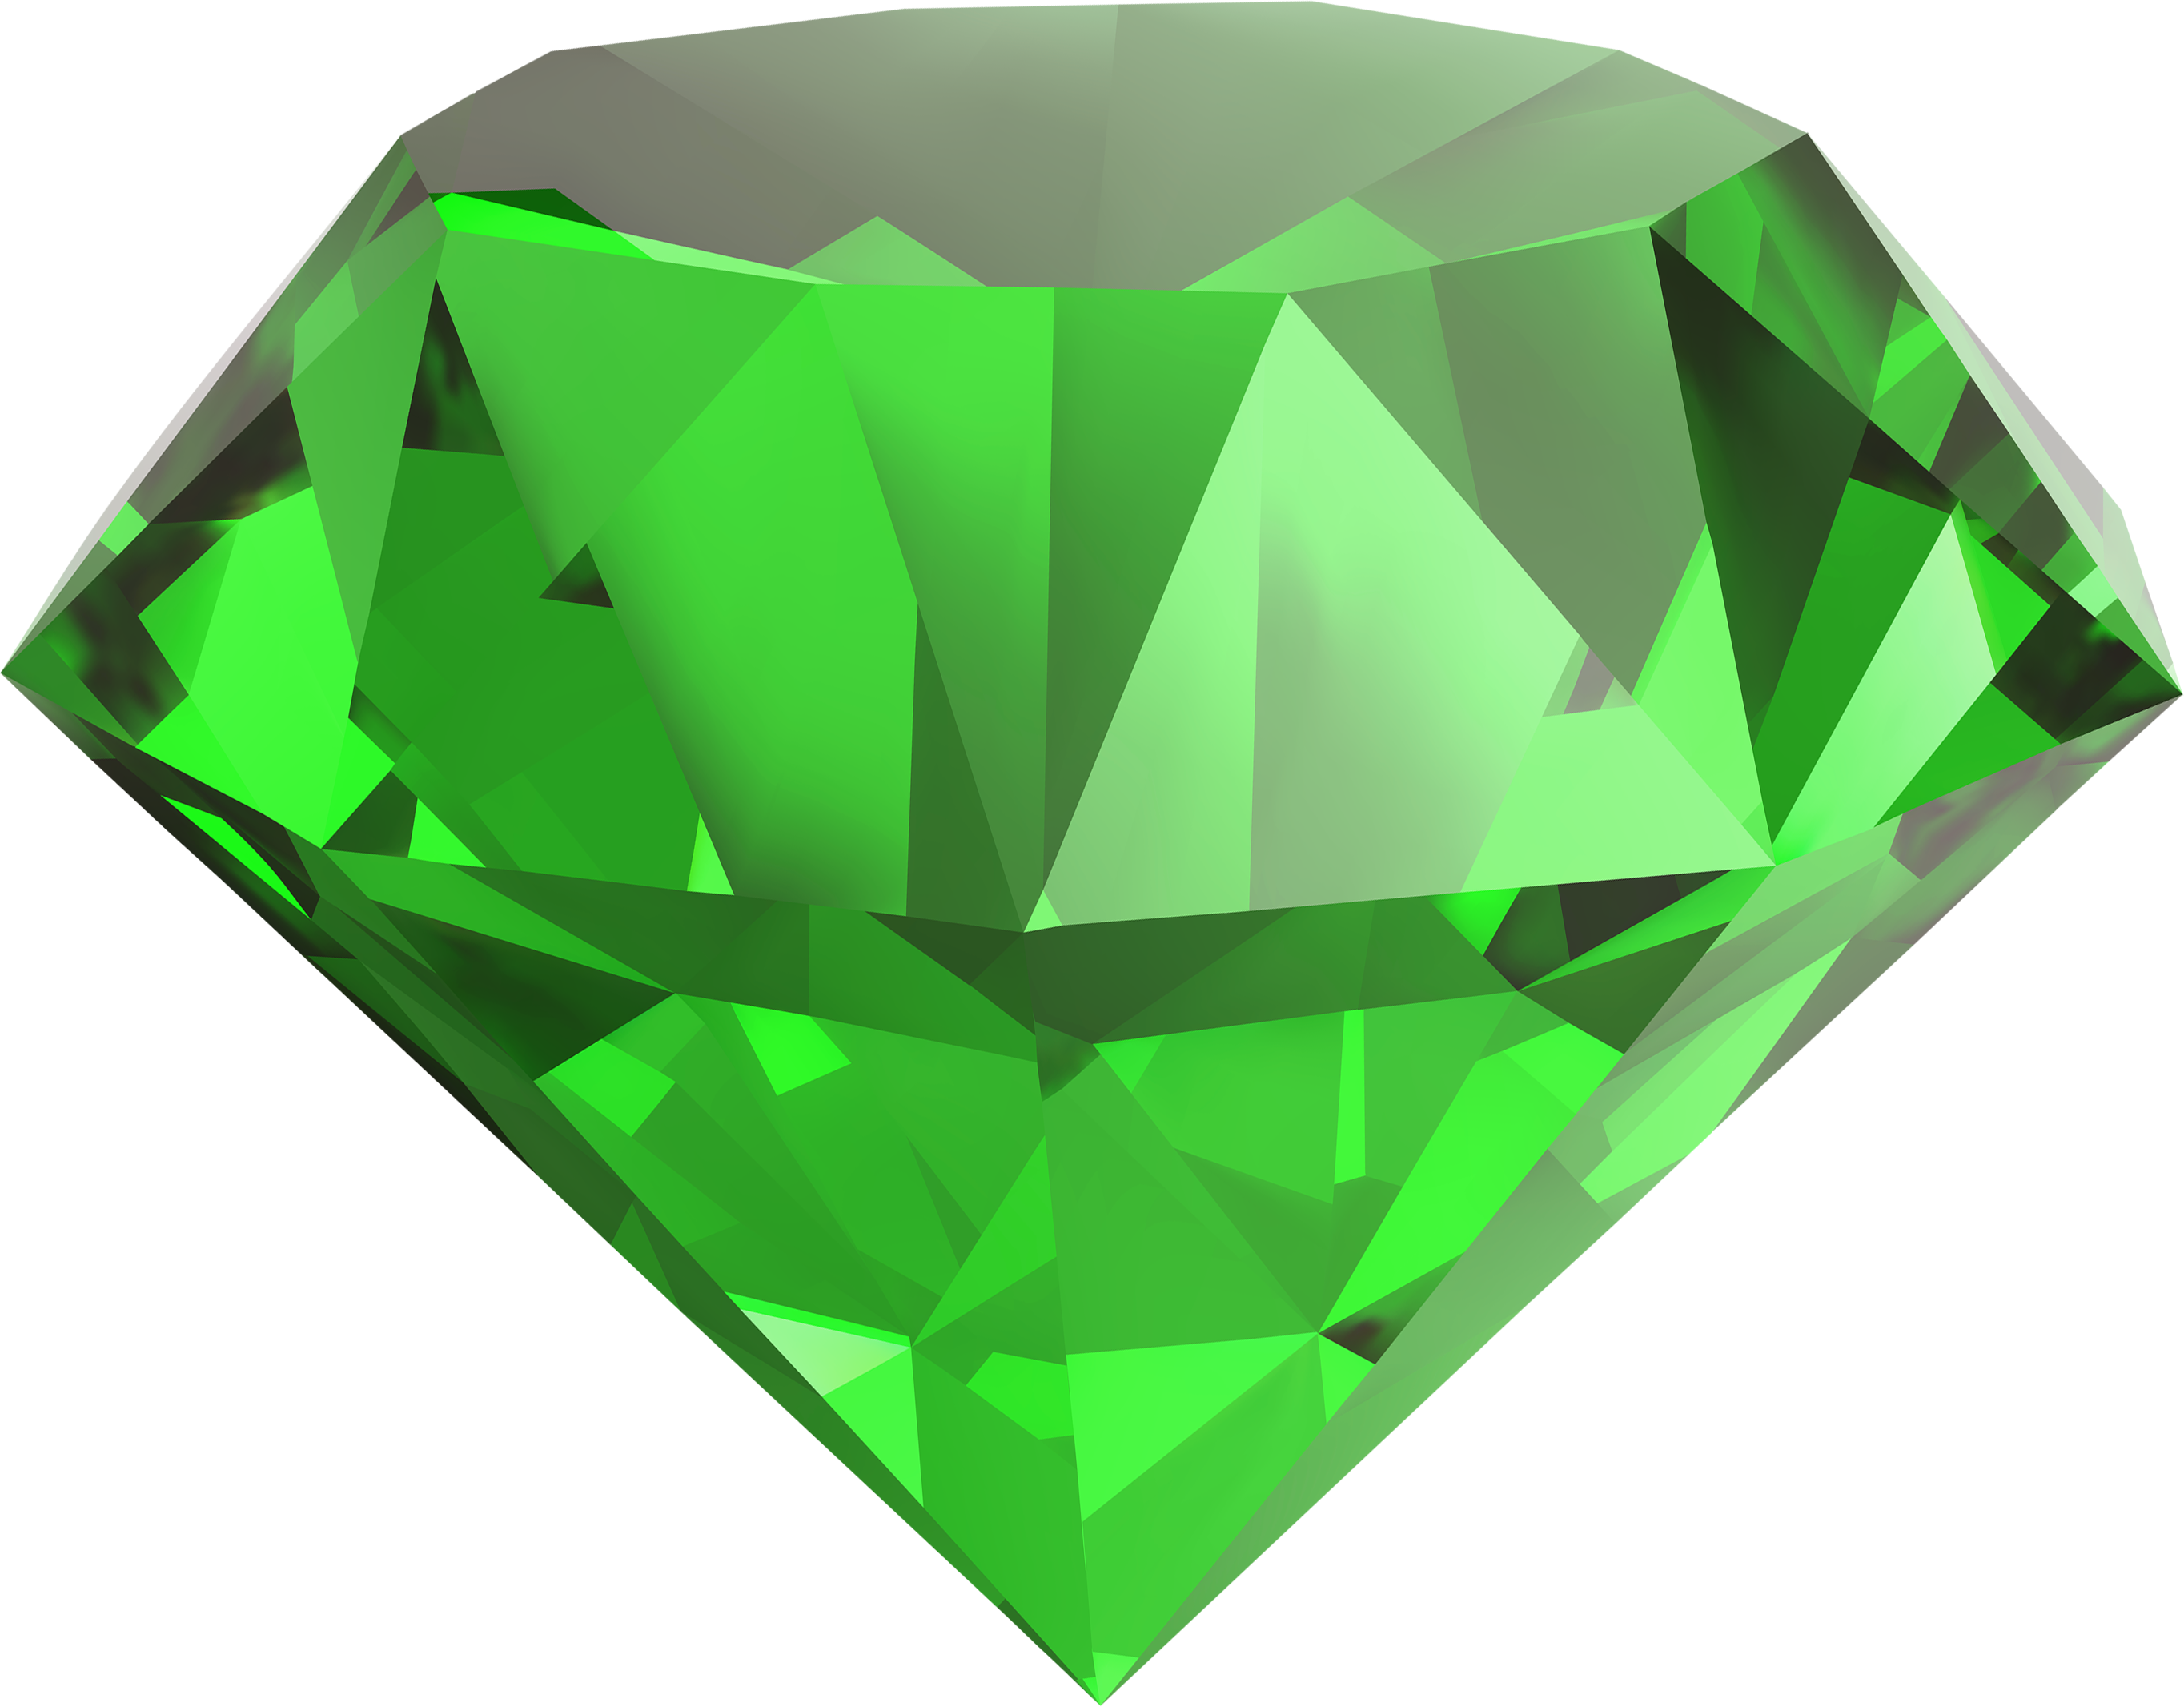 Jewelry and gems PNG images free download.